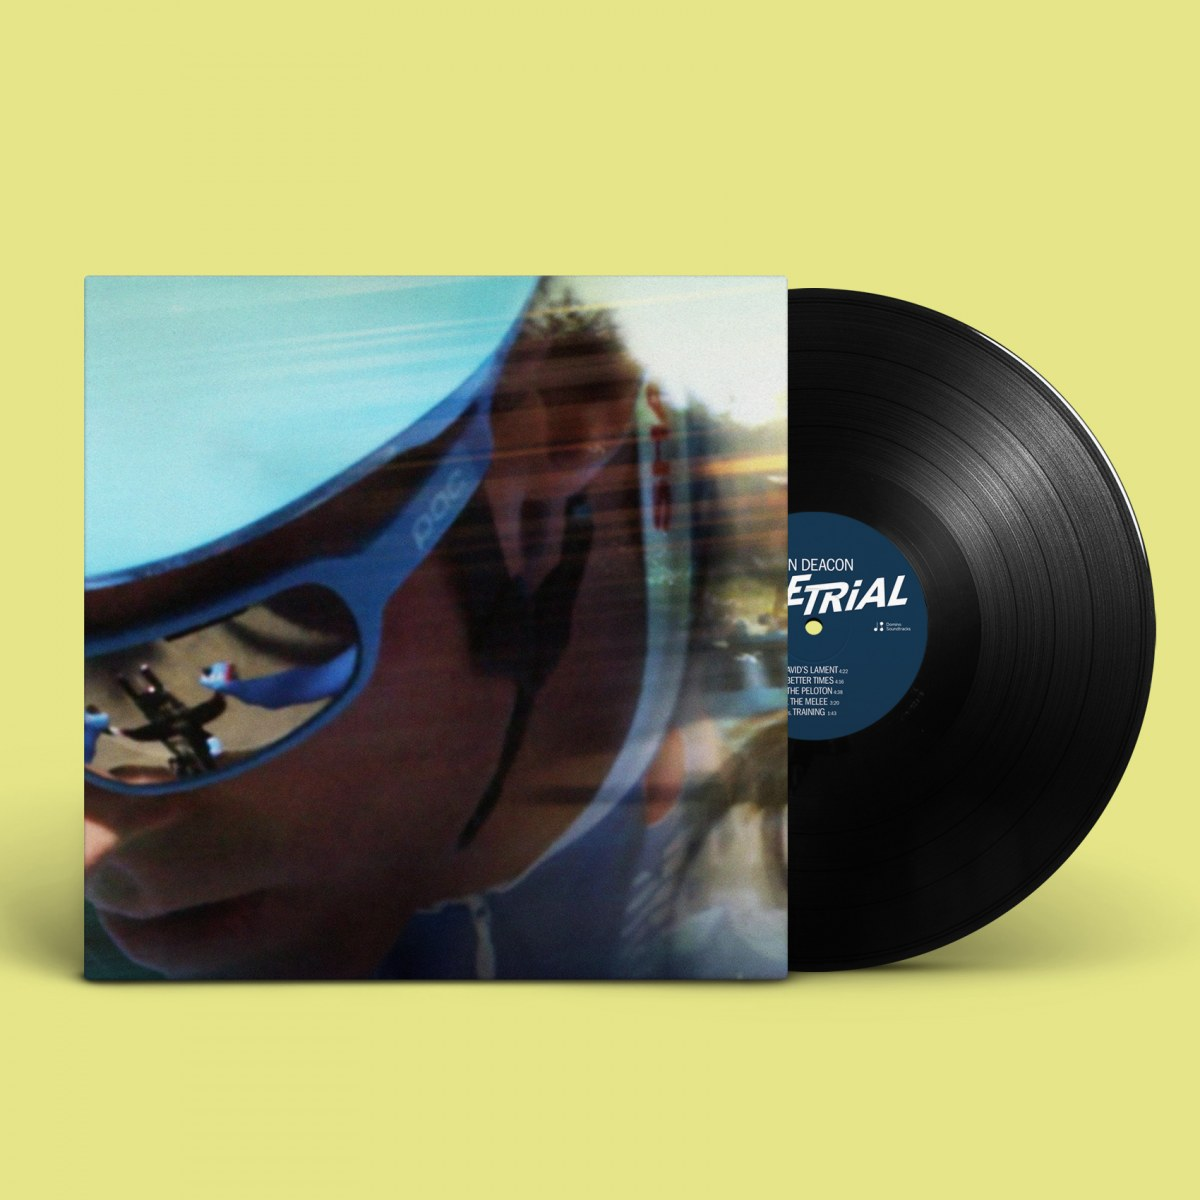 164de34ba9f Dan Deacon - Time Trial (Original Score) (LIMITED EDITION LP)